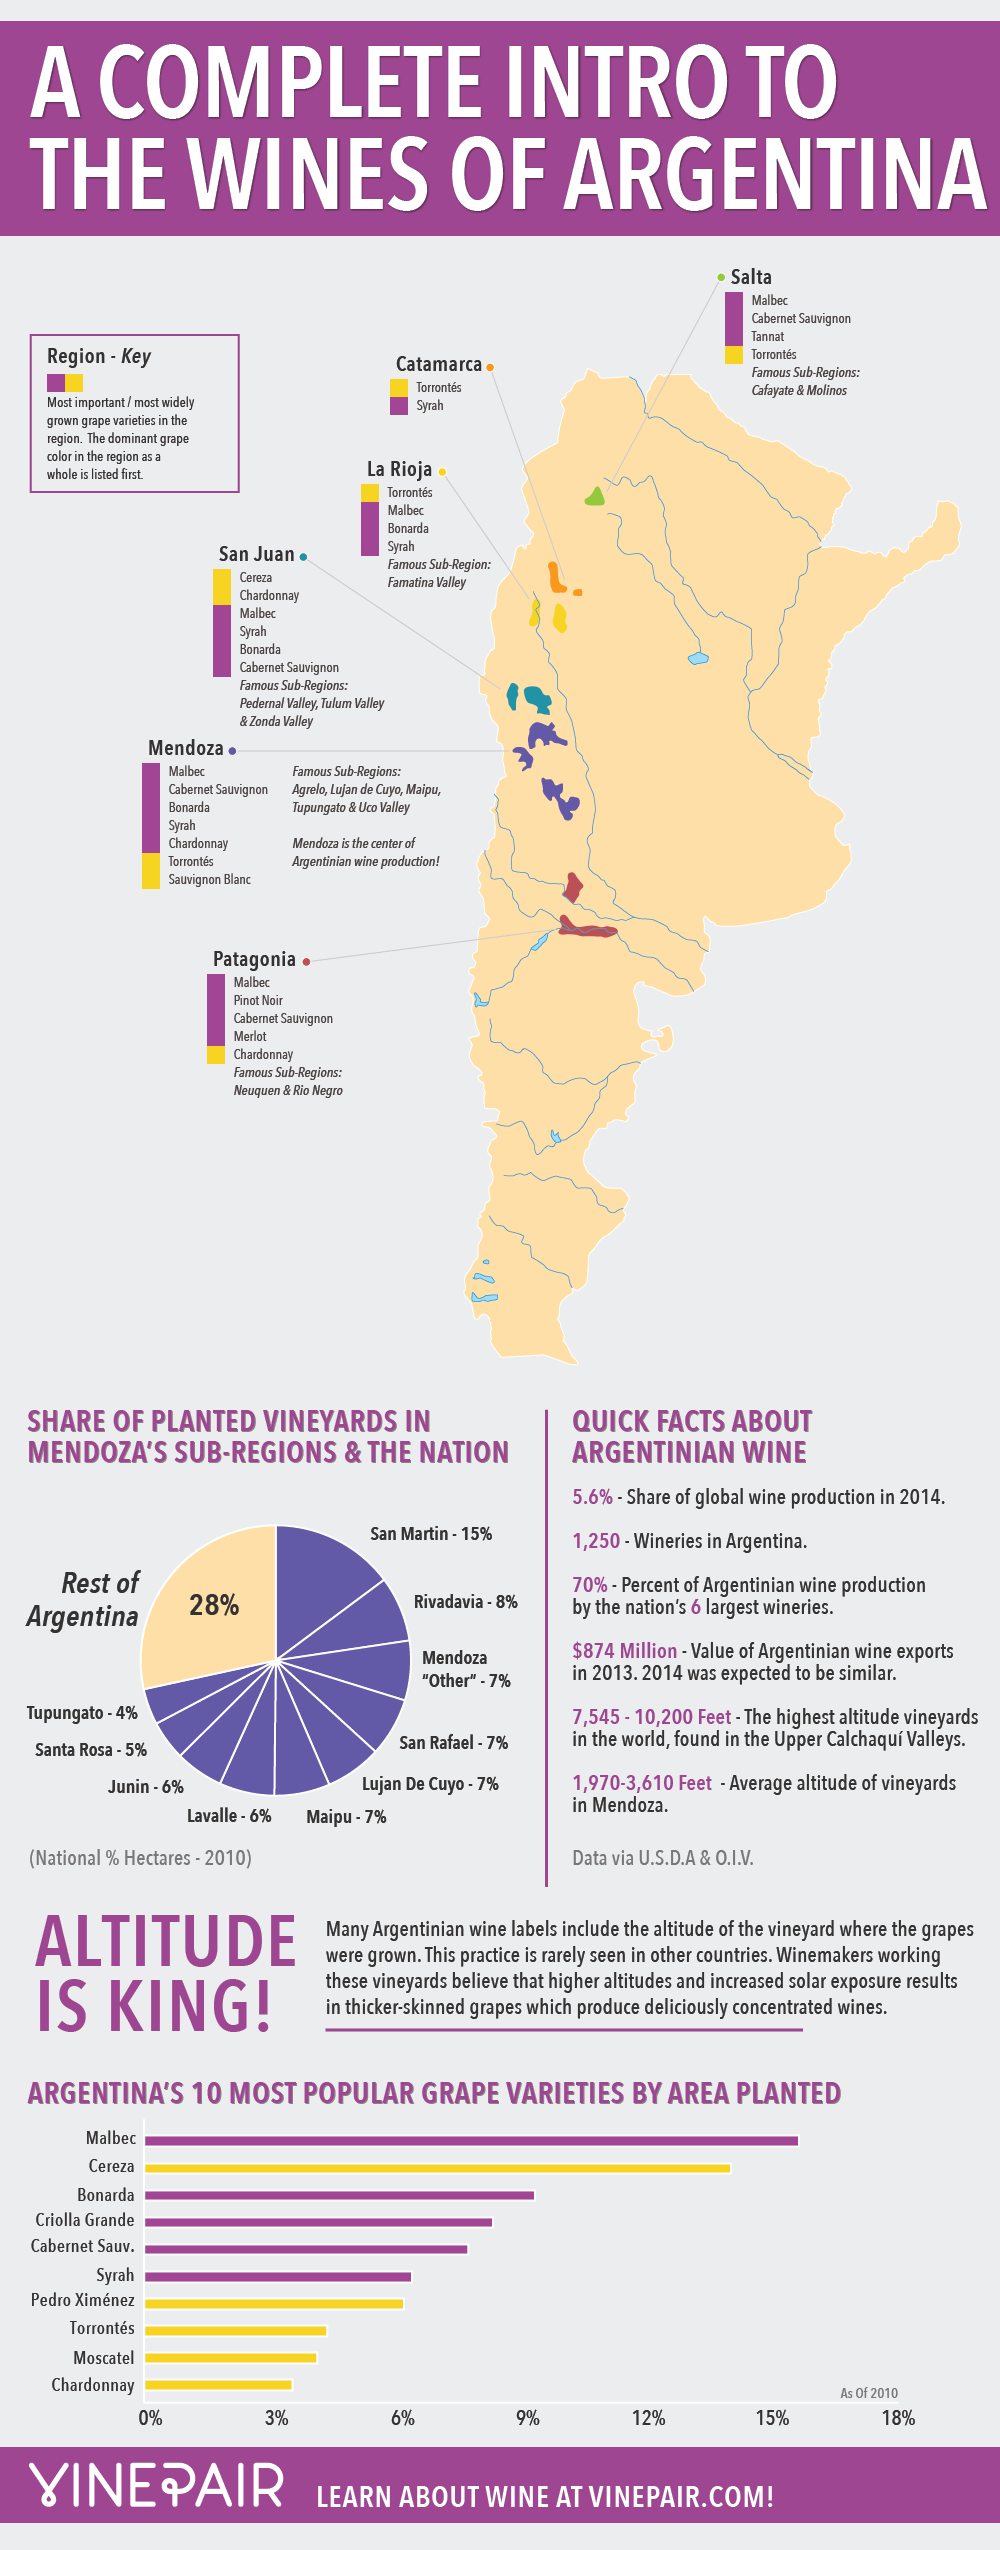 INFOGRAPHIC: The complete introduction to the wines of Argentina featuring a map!